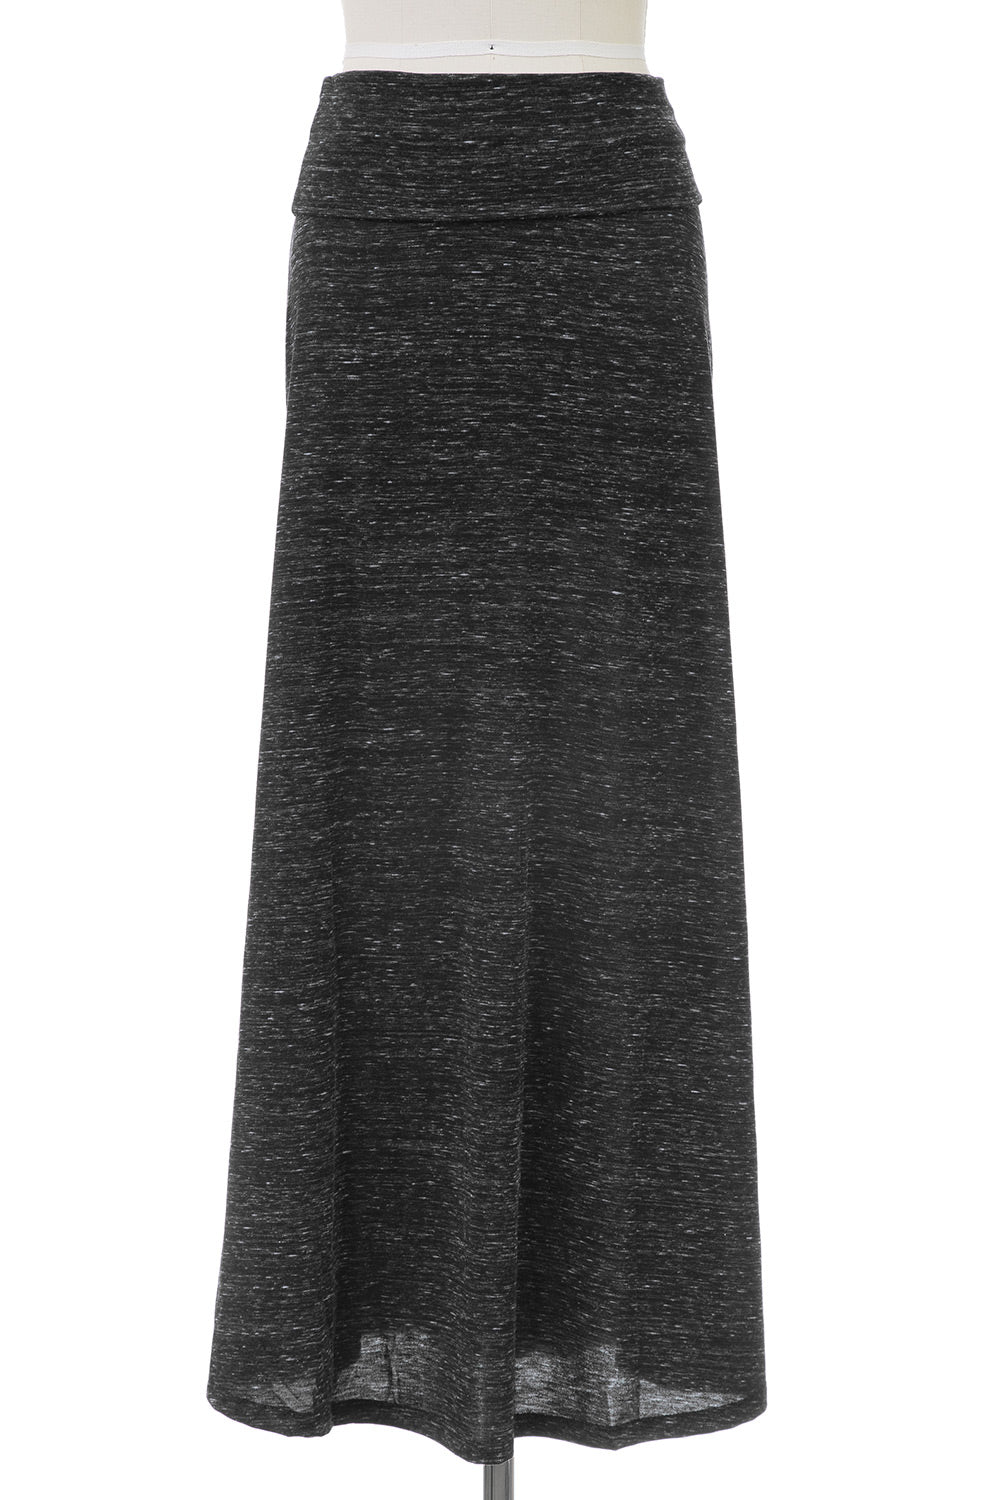 Type 2 Charcoal Heath Maxi Skirt